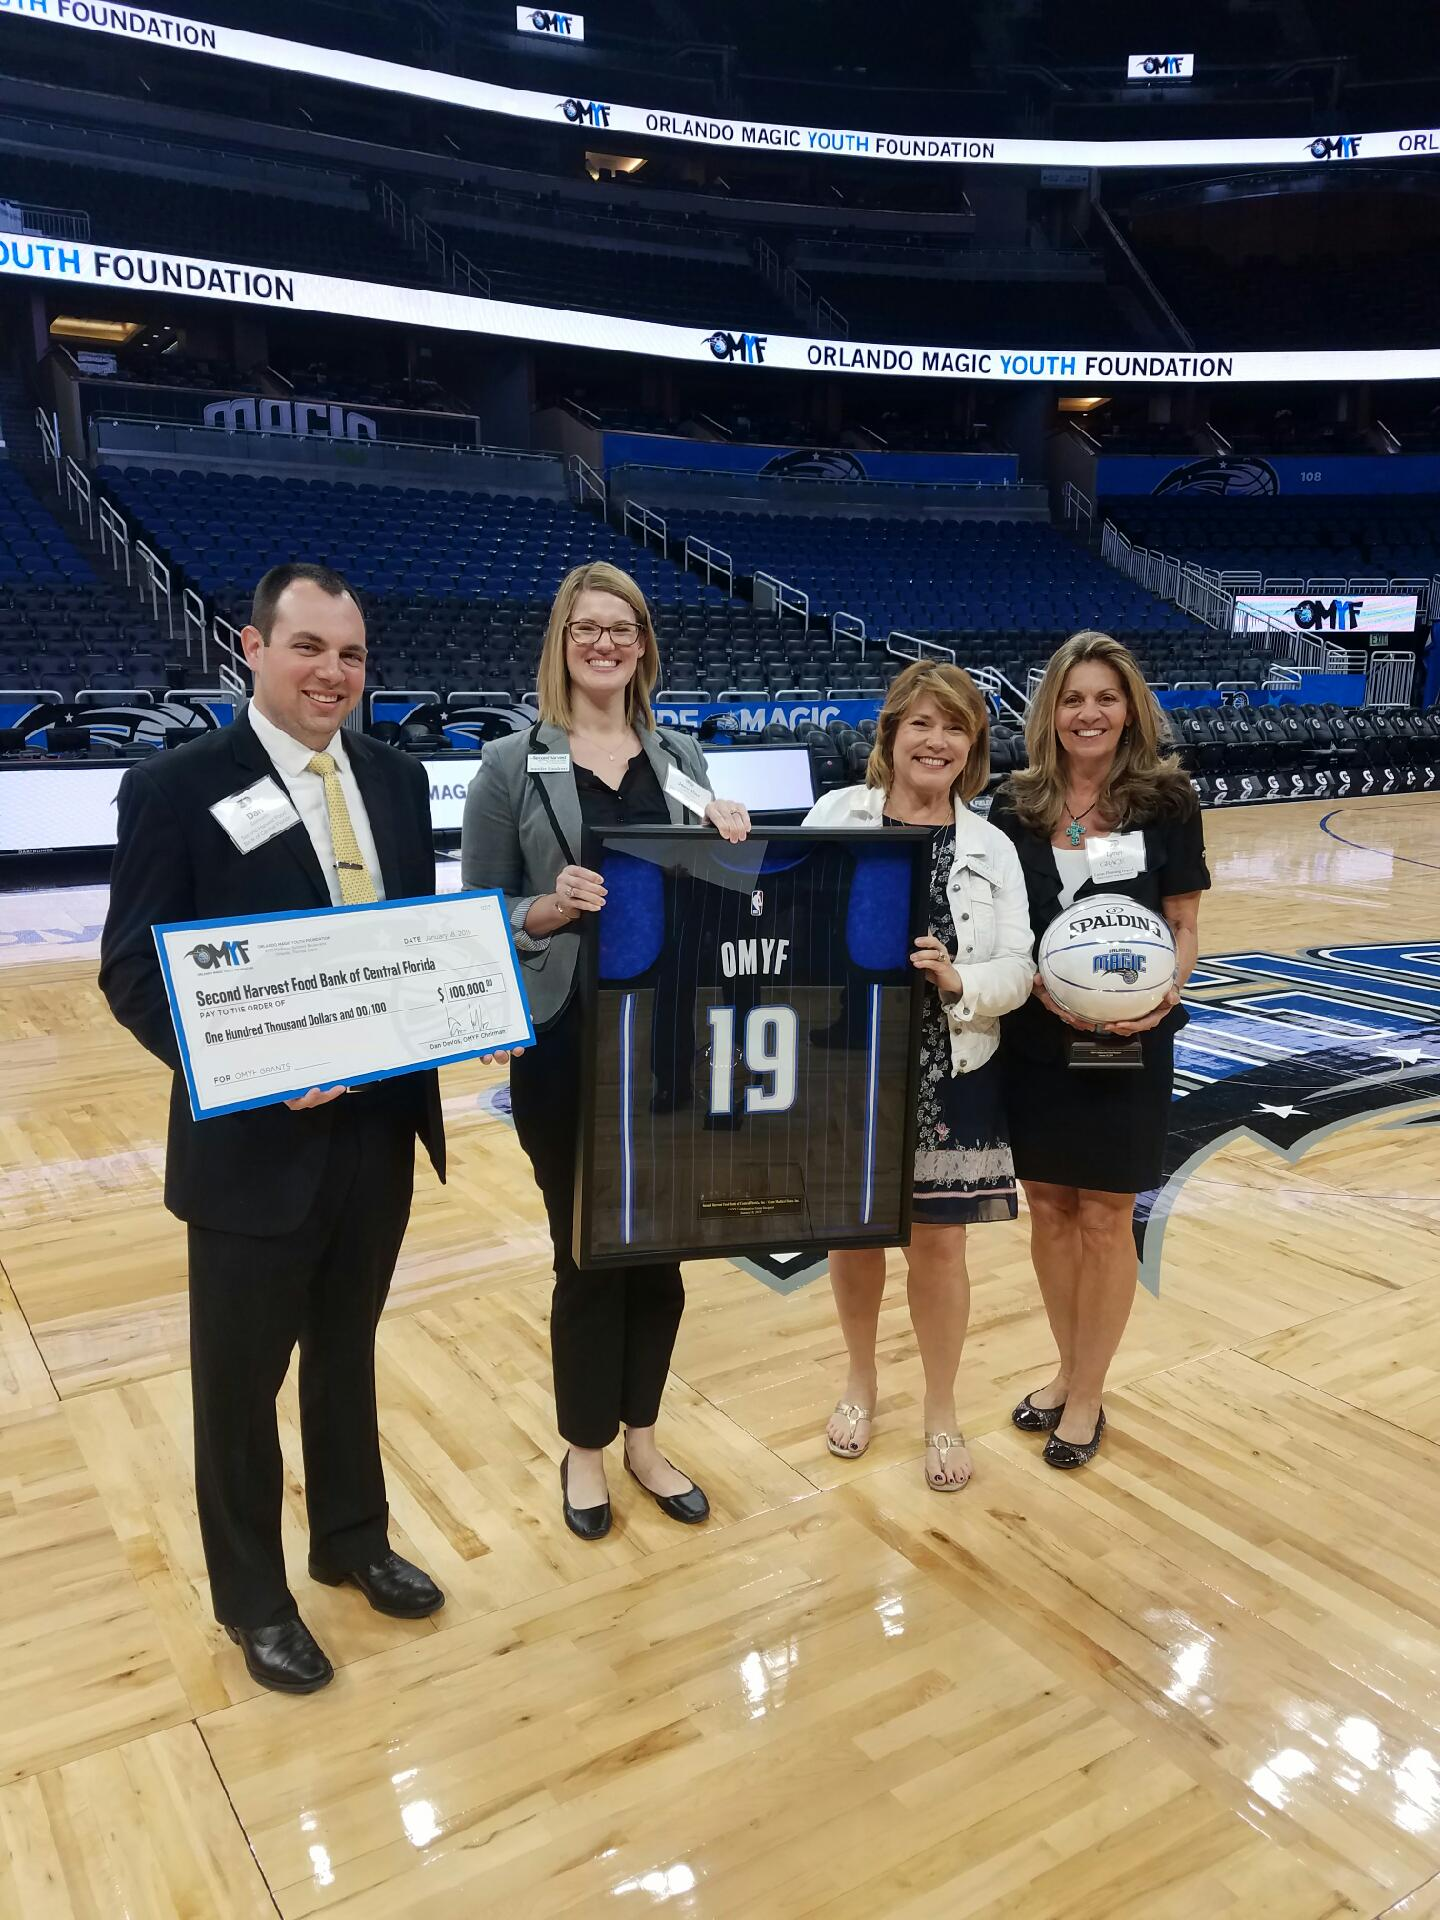 Grace Awarded Grant from Orlando Magic Youth Foundation to Support Pediatric Nutrition Program - January 18, 2019